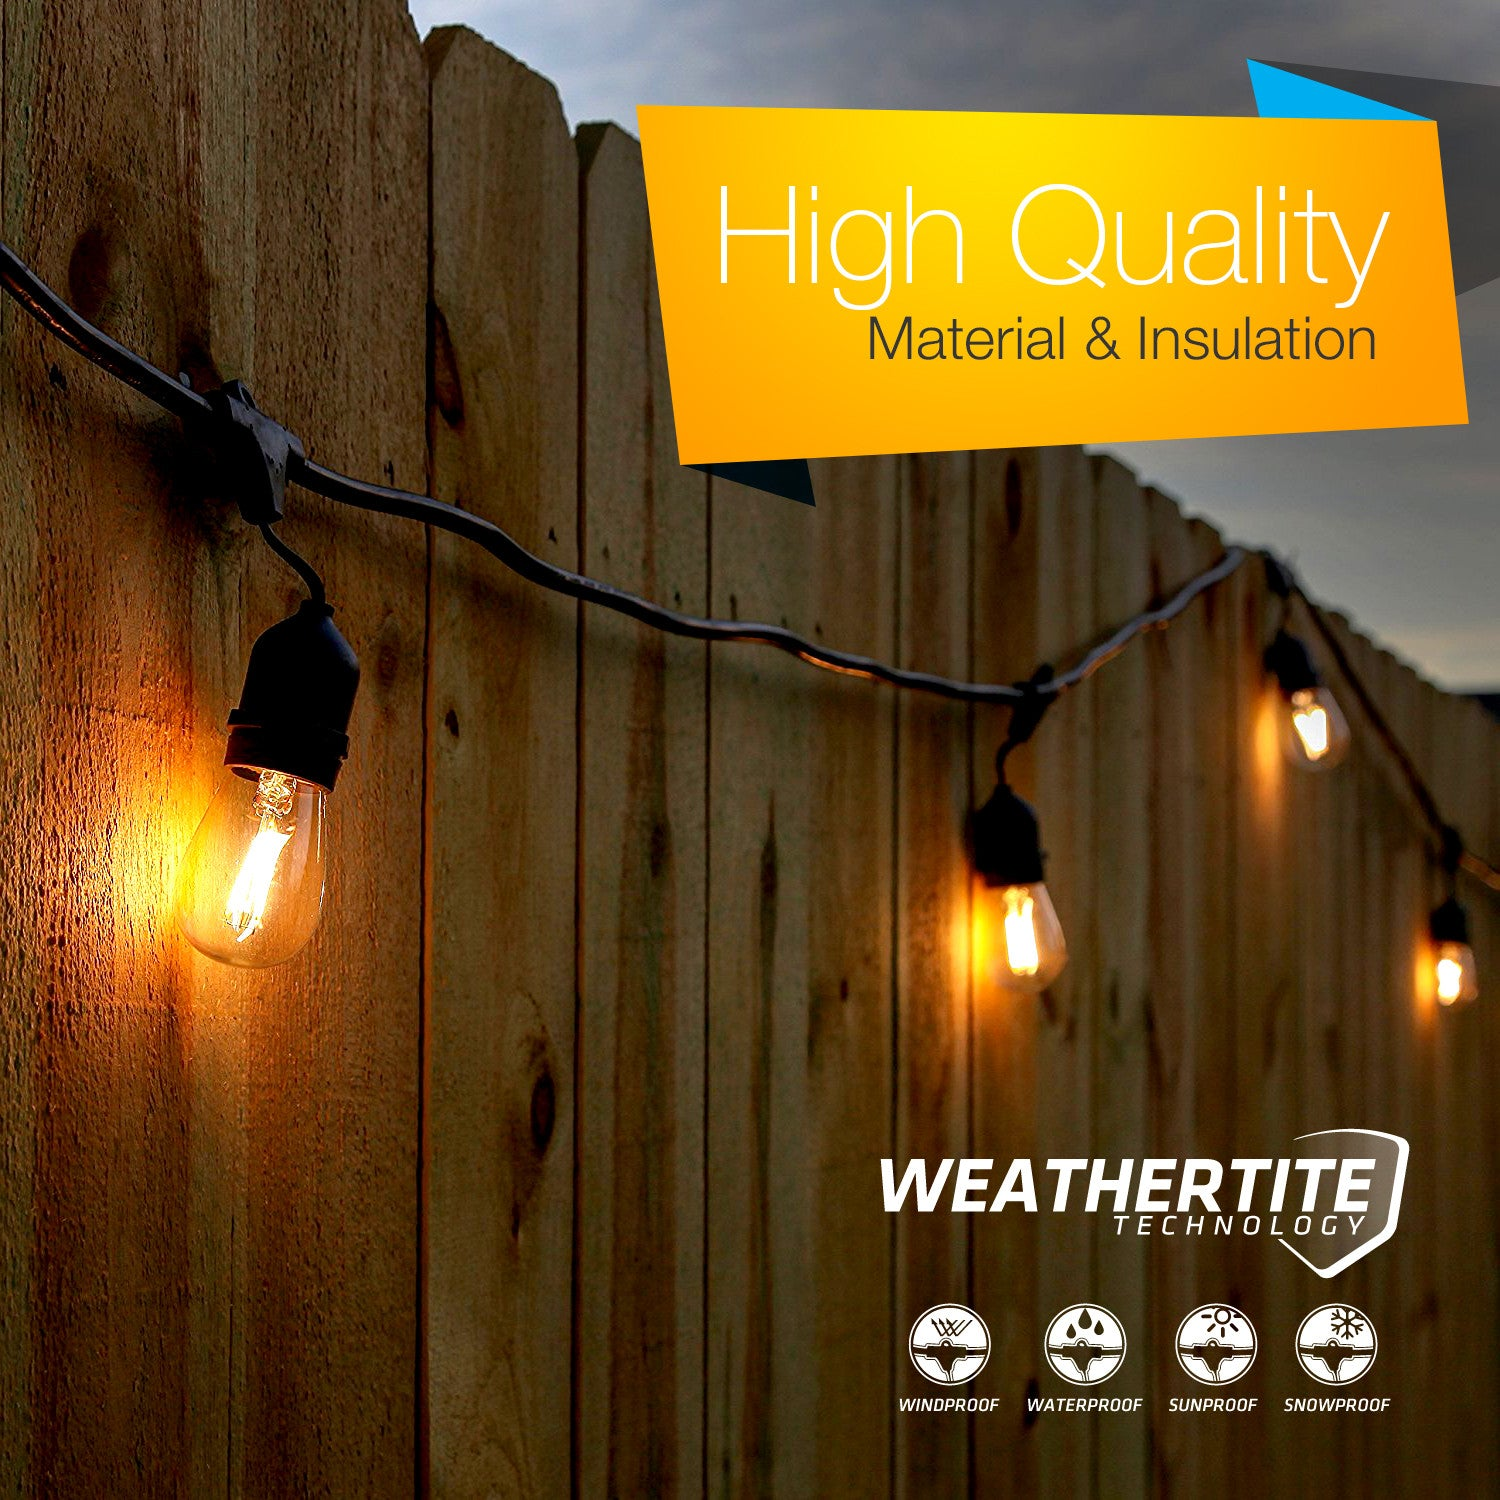 Attractive Brightech Store | Brightech U2013 Ambience Pro LED Outdoor Weatherproof Commercial  Grade String Lights U2013 WeatherTite Technology U2013 Soothing 1 Watt LED Bulbs ...